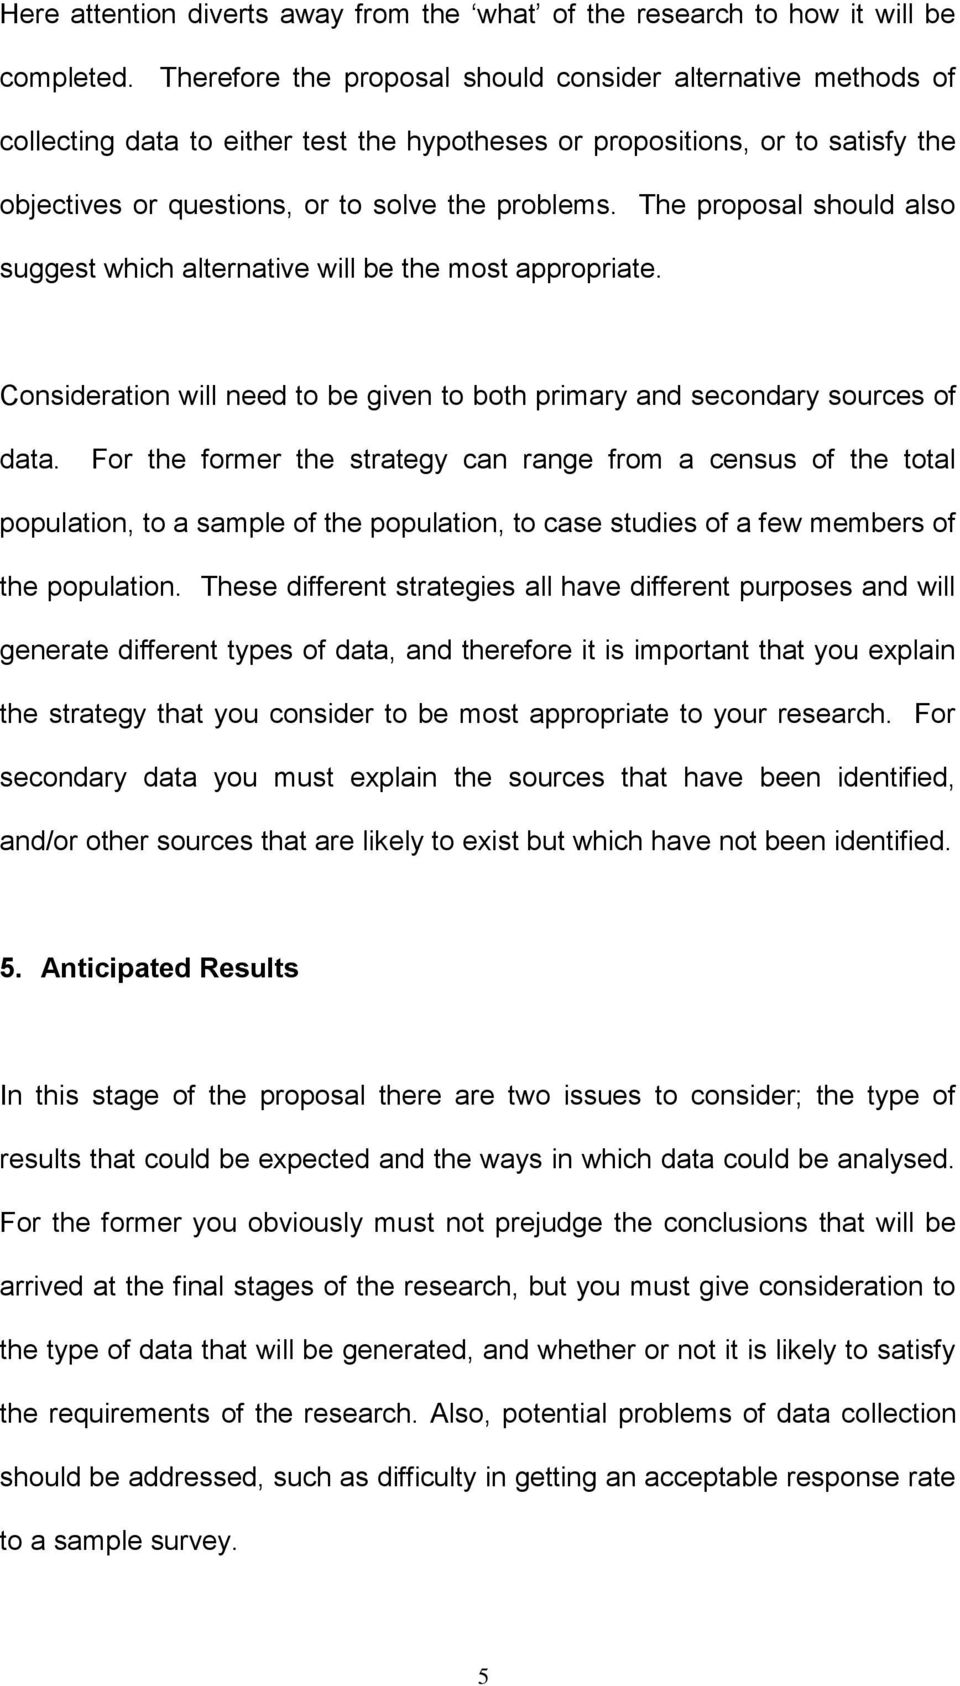 The proposal should also suggest which alternative will be the most appropriate. Consideration will need to be given to both primary and secondary sources of data.